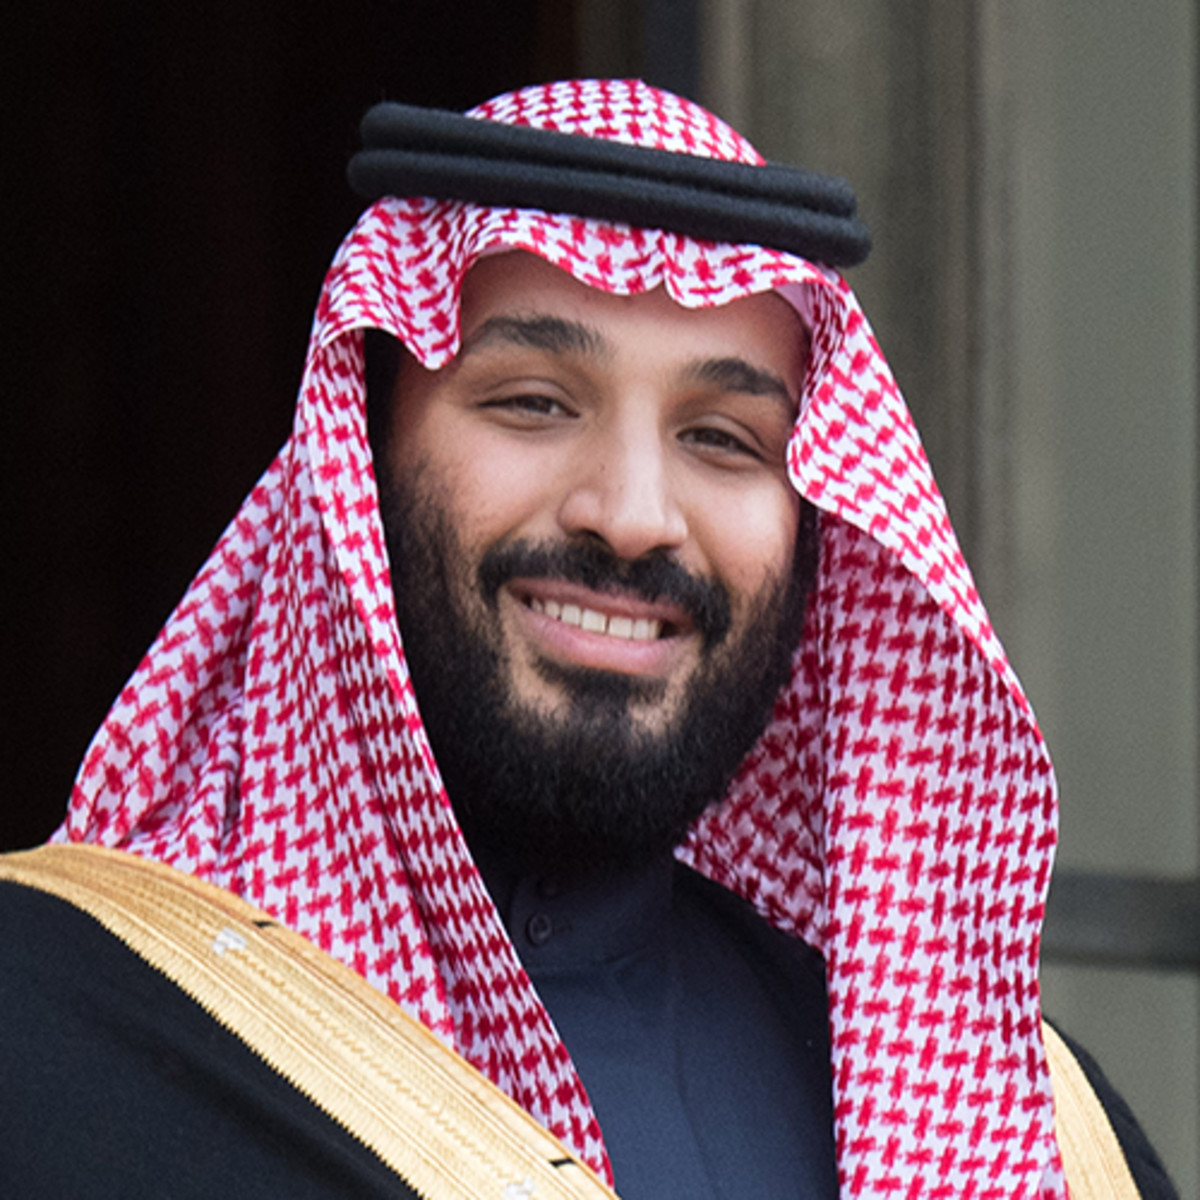 crown-prince-of-the-kingdom-of-saudi-arabia-mohammed-bin-salman-is-on-a-three-days-official-visit-to-france-photo-by-stephane-cardinale-corbis_corbis-via-getty-images-square.jpg